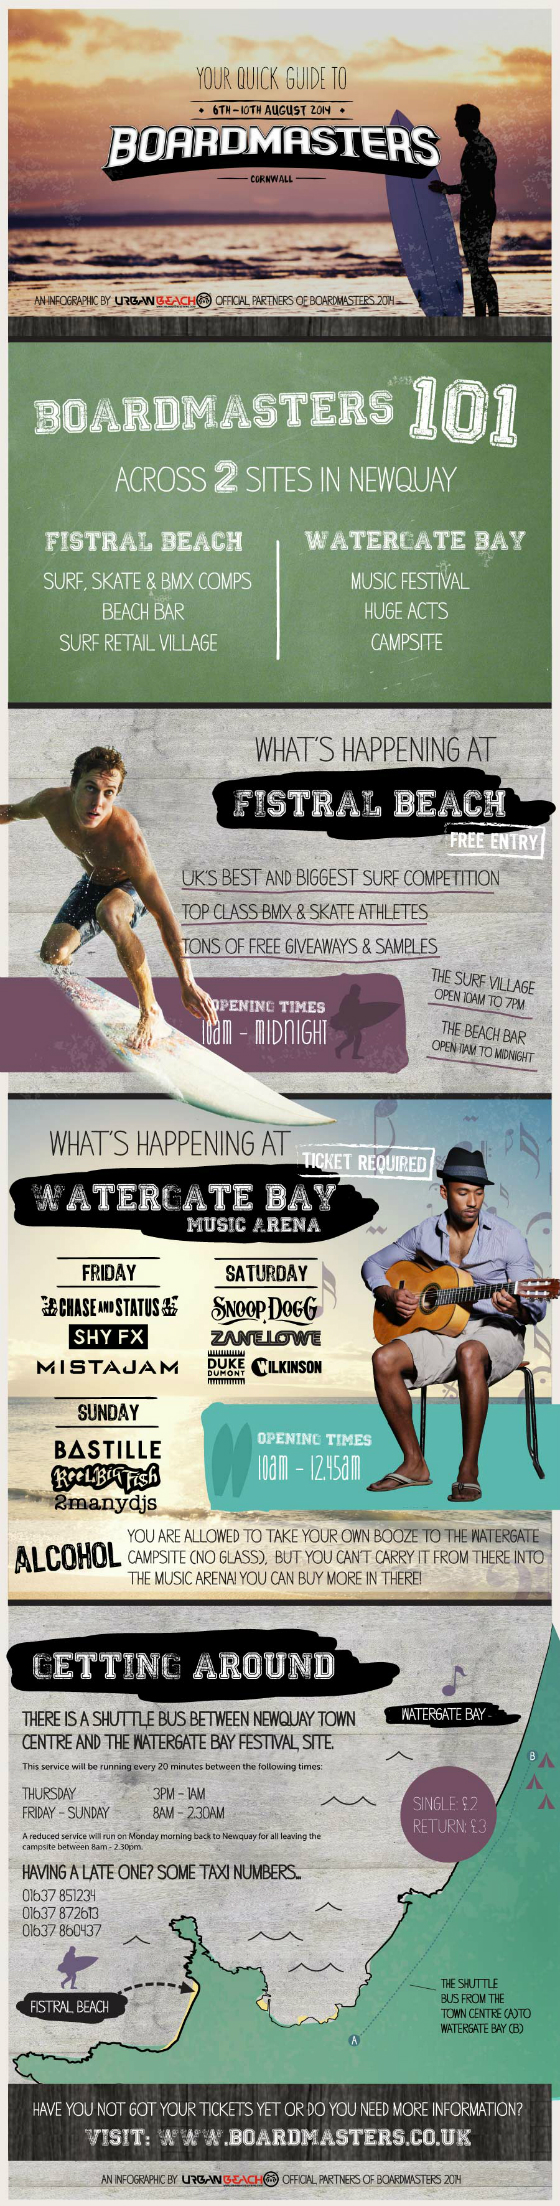 boardmasters-infographic